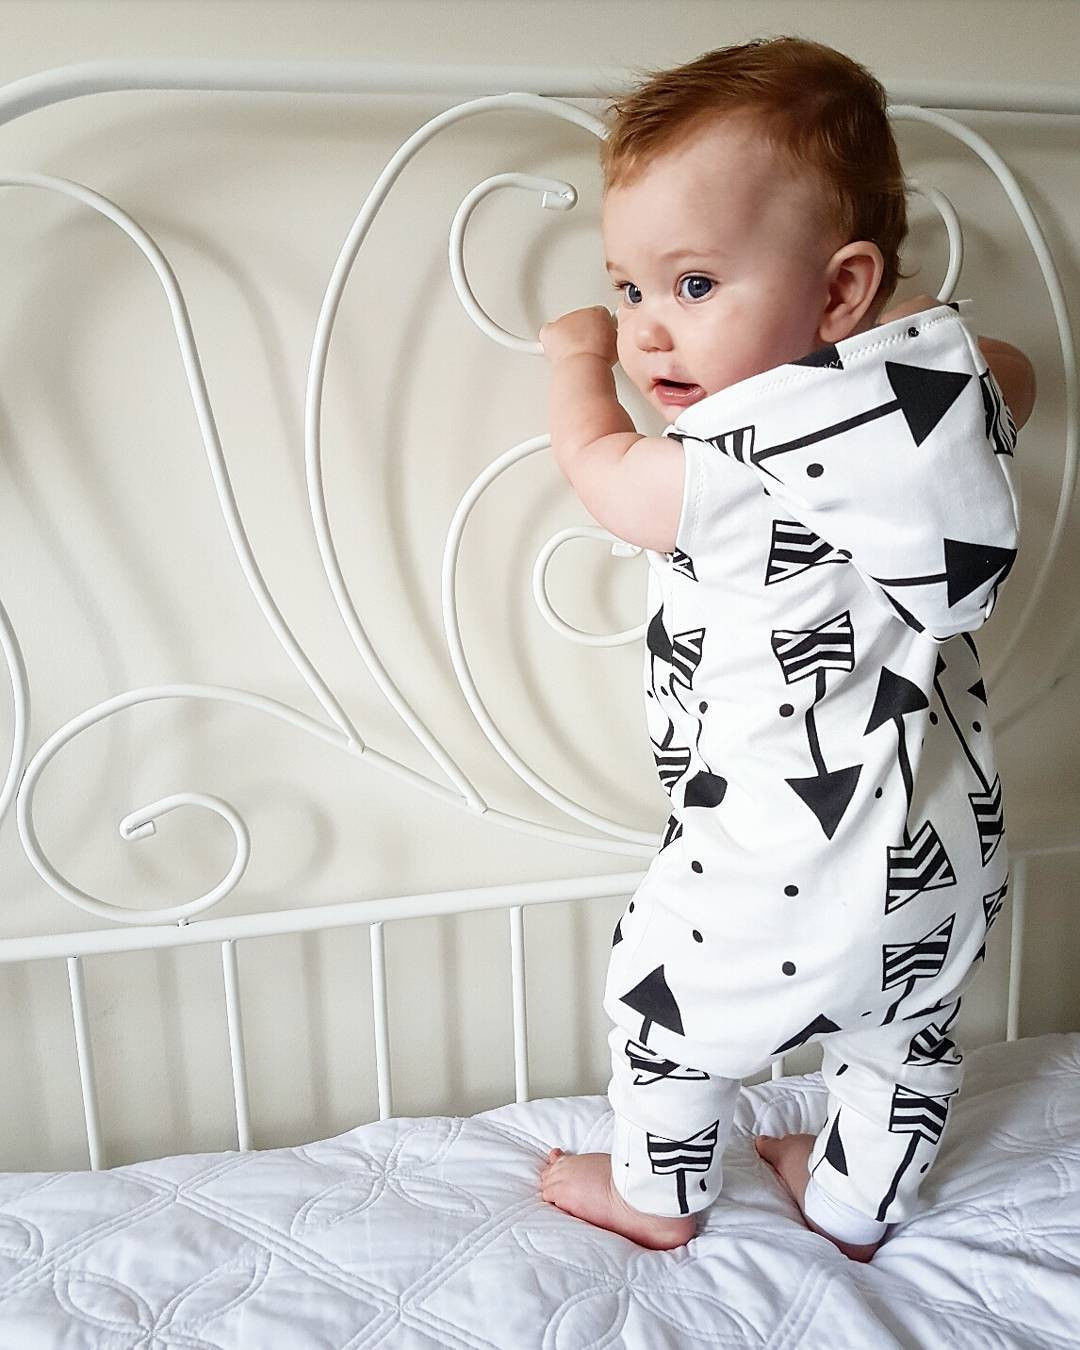 2019 New Cute Children Sleeveless Arrow Clothing Infant Baby Boy Kid Hooded Sleeveles Romper Jumpsuit Outfits Clothes